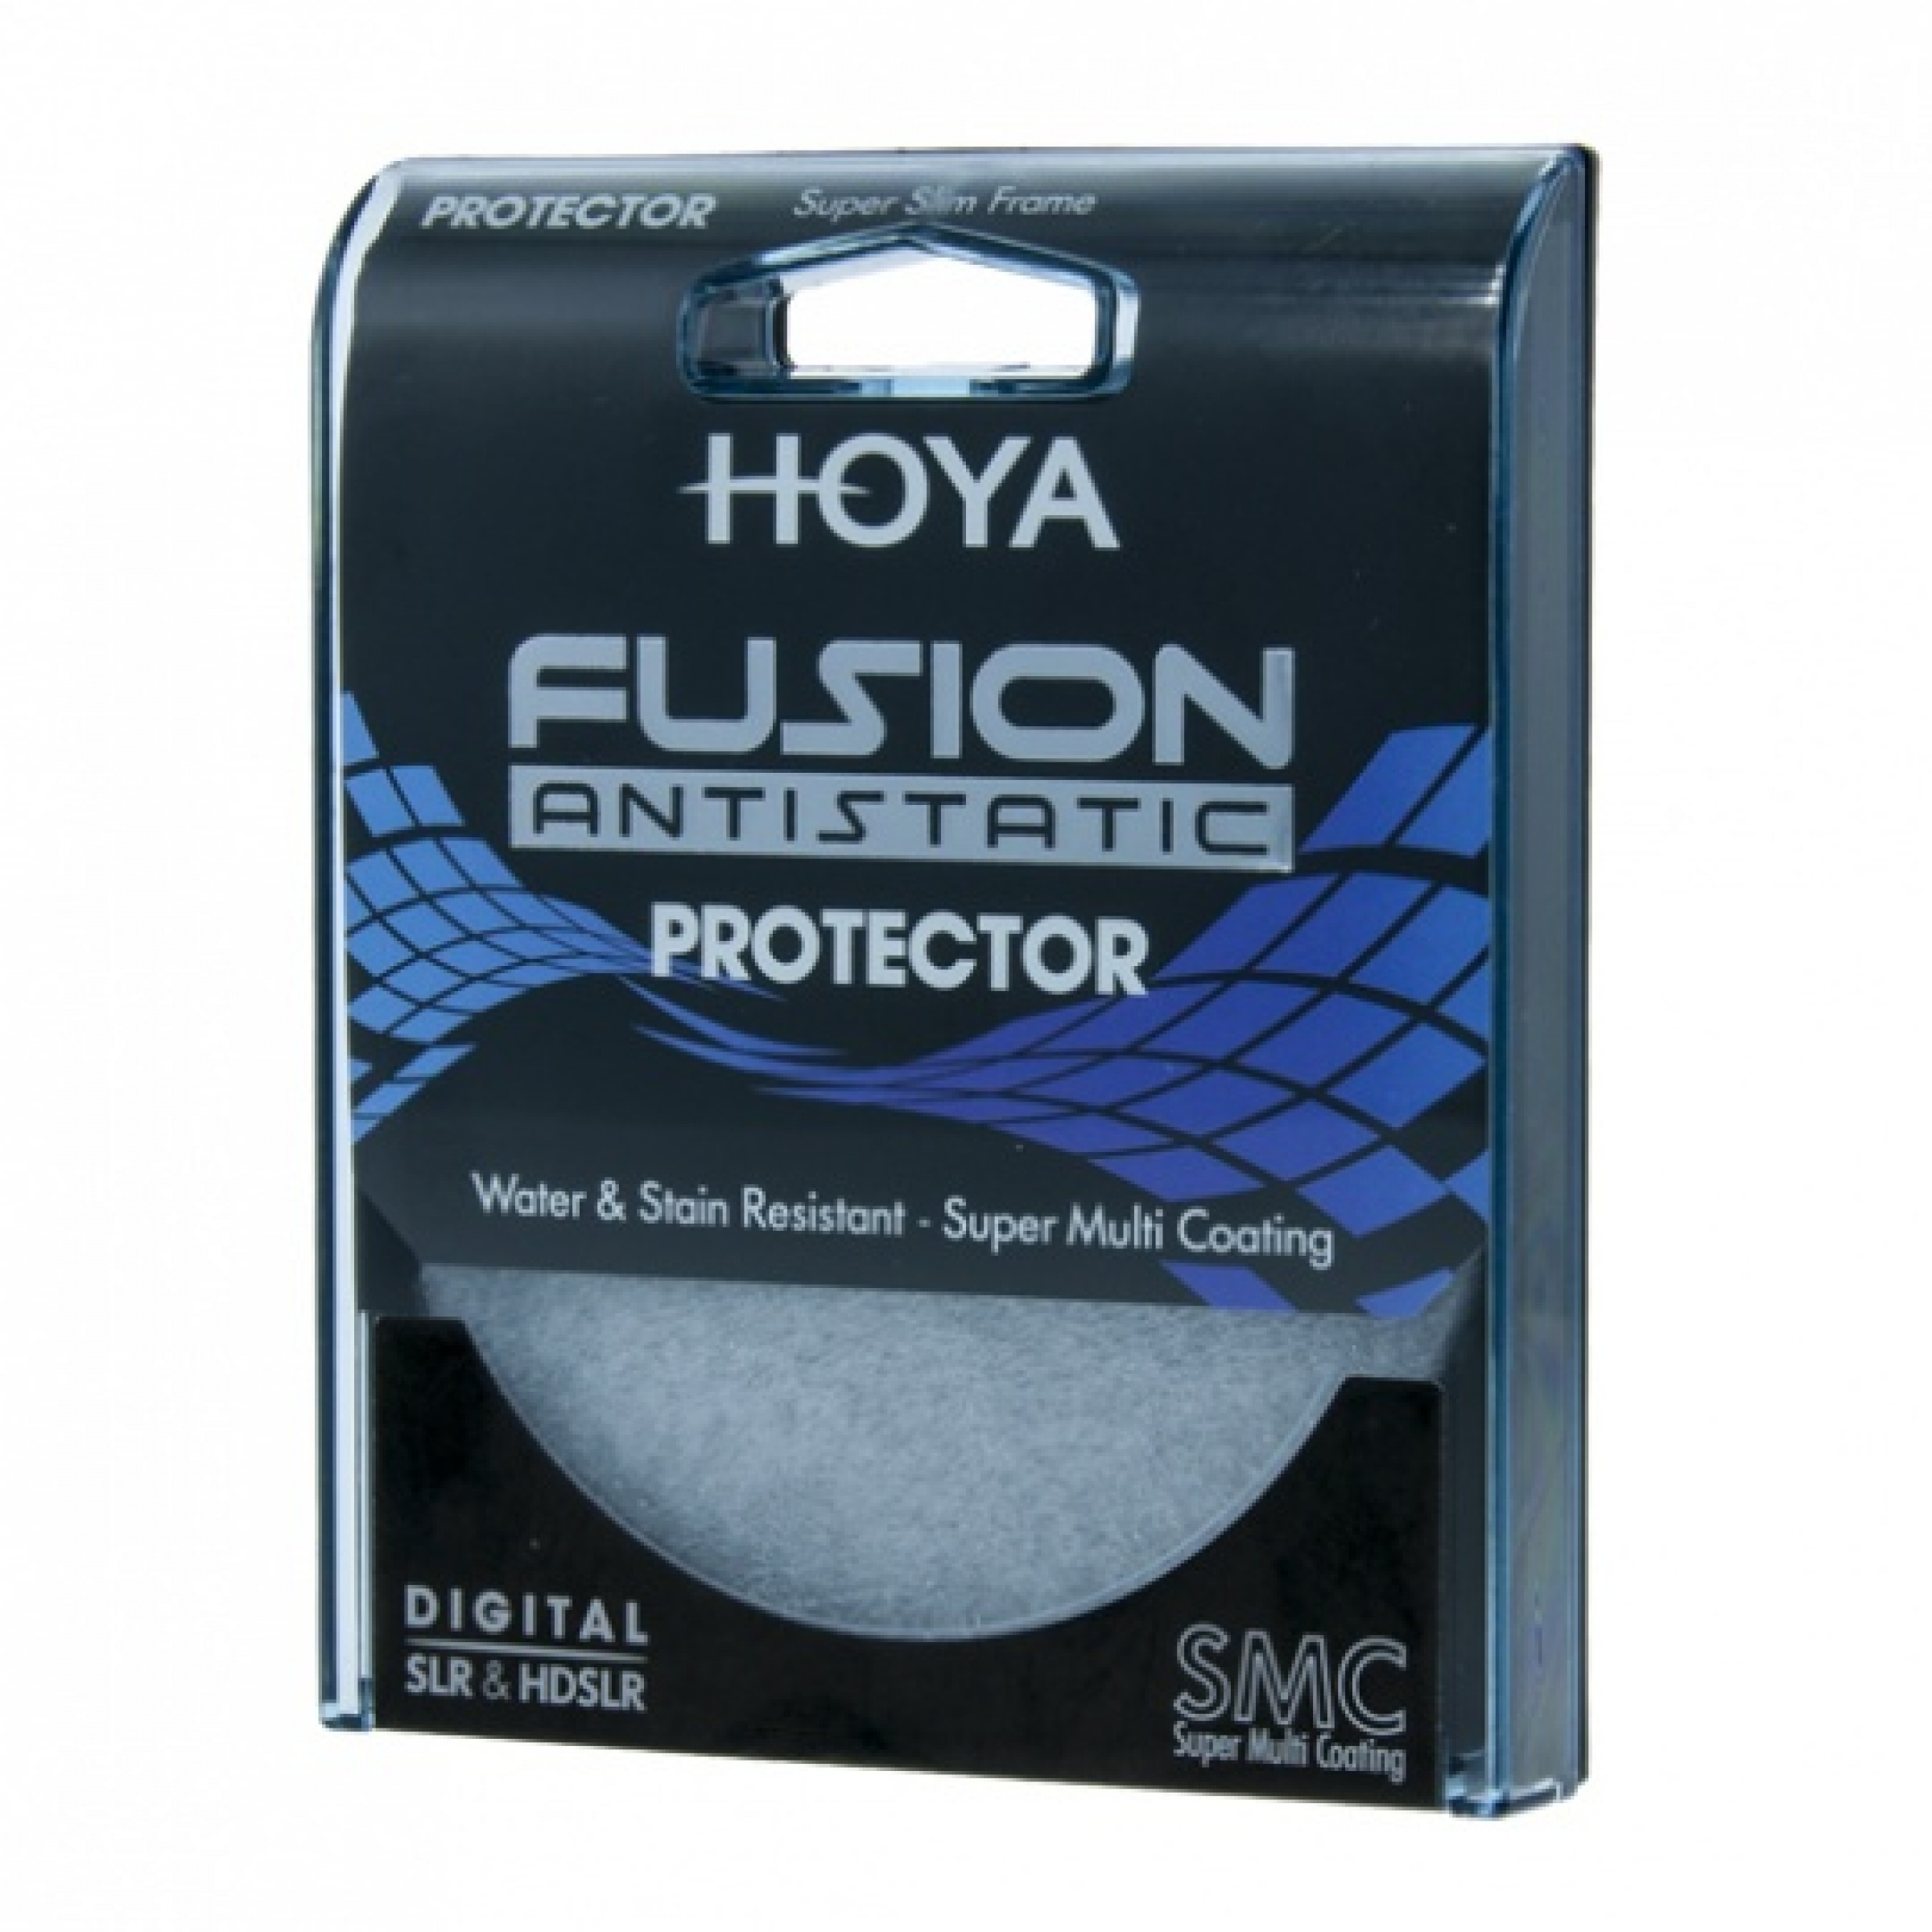 Hoya-46mm-Protector-Fusion-Antistatic